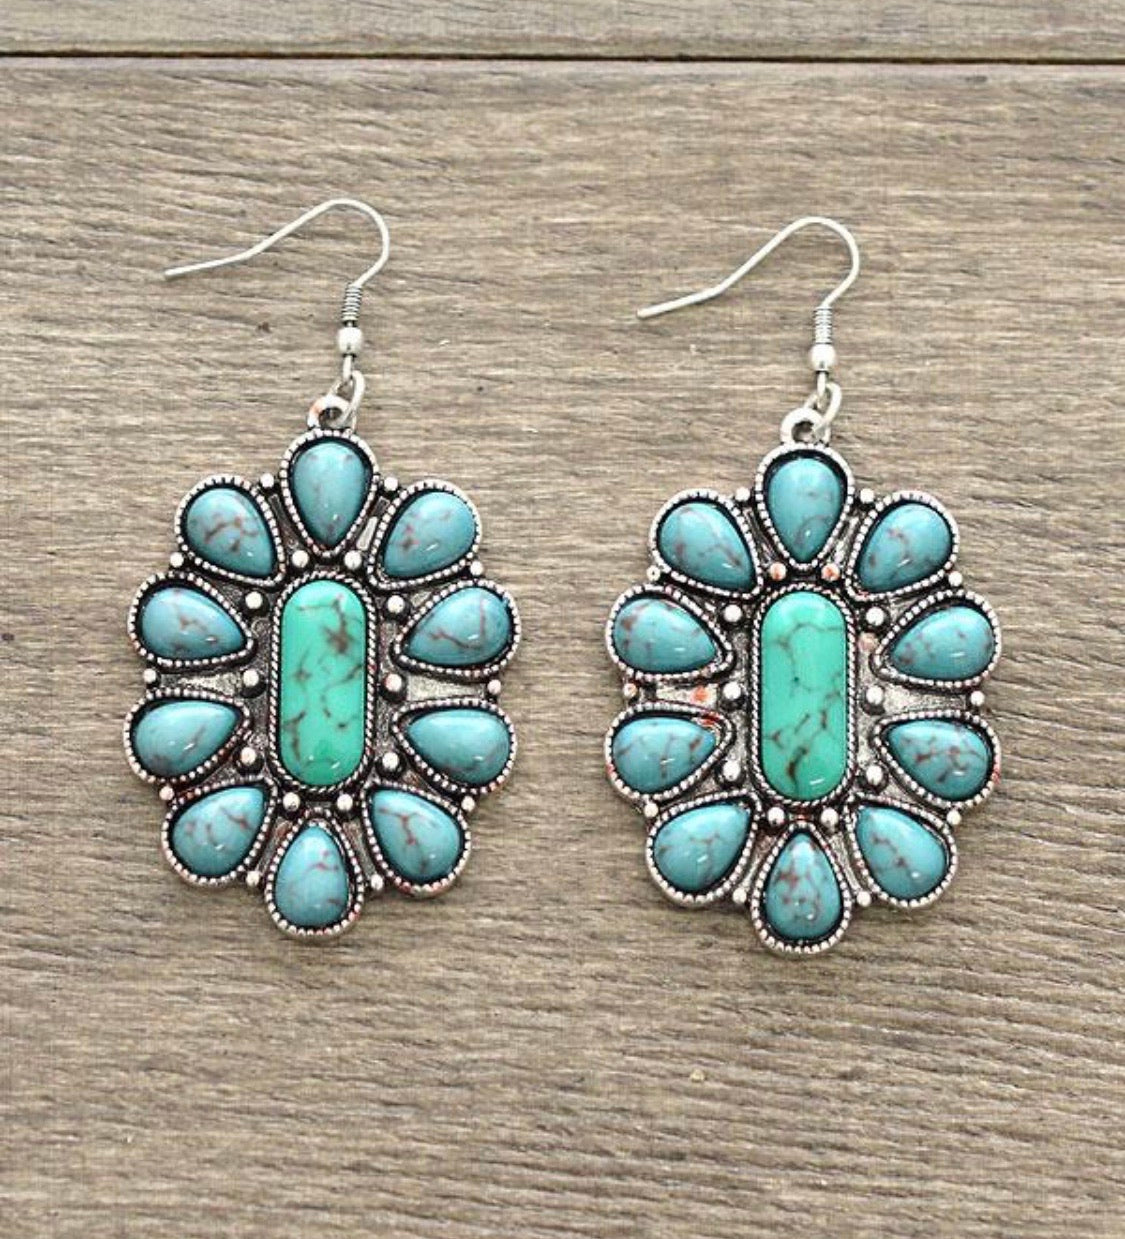 141707 Turquoise Stone Floral Earrings